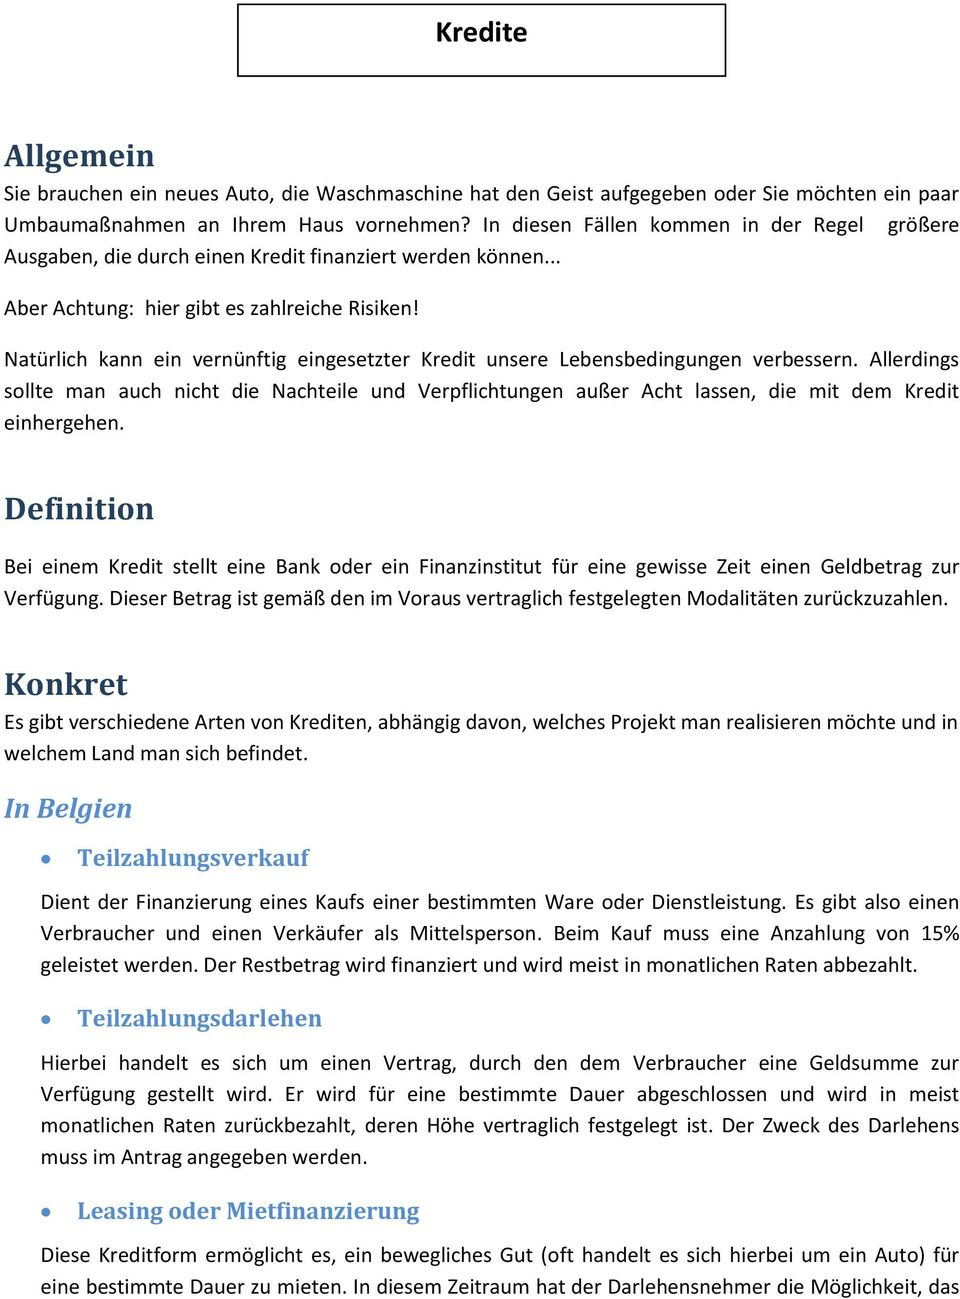 Allgemein Definition Konkret Kredite In Belgien